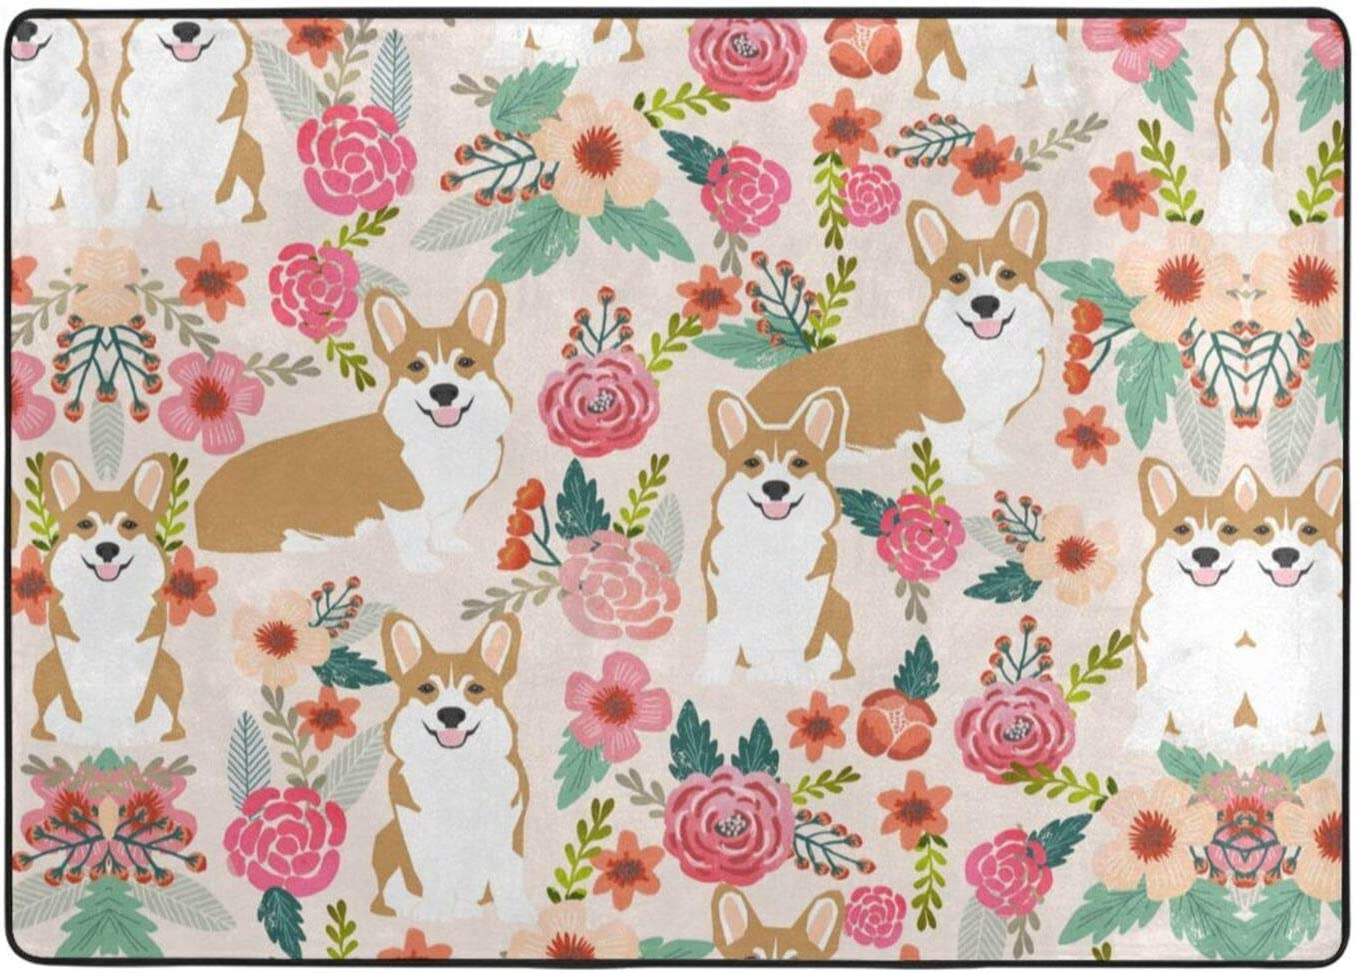 Corgi Floral Flowers Price reduction Printed Area Soft Cheap super special price Rugs Ultra Bedroom